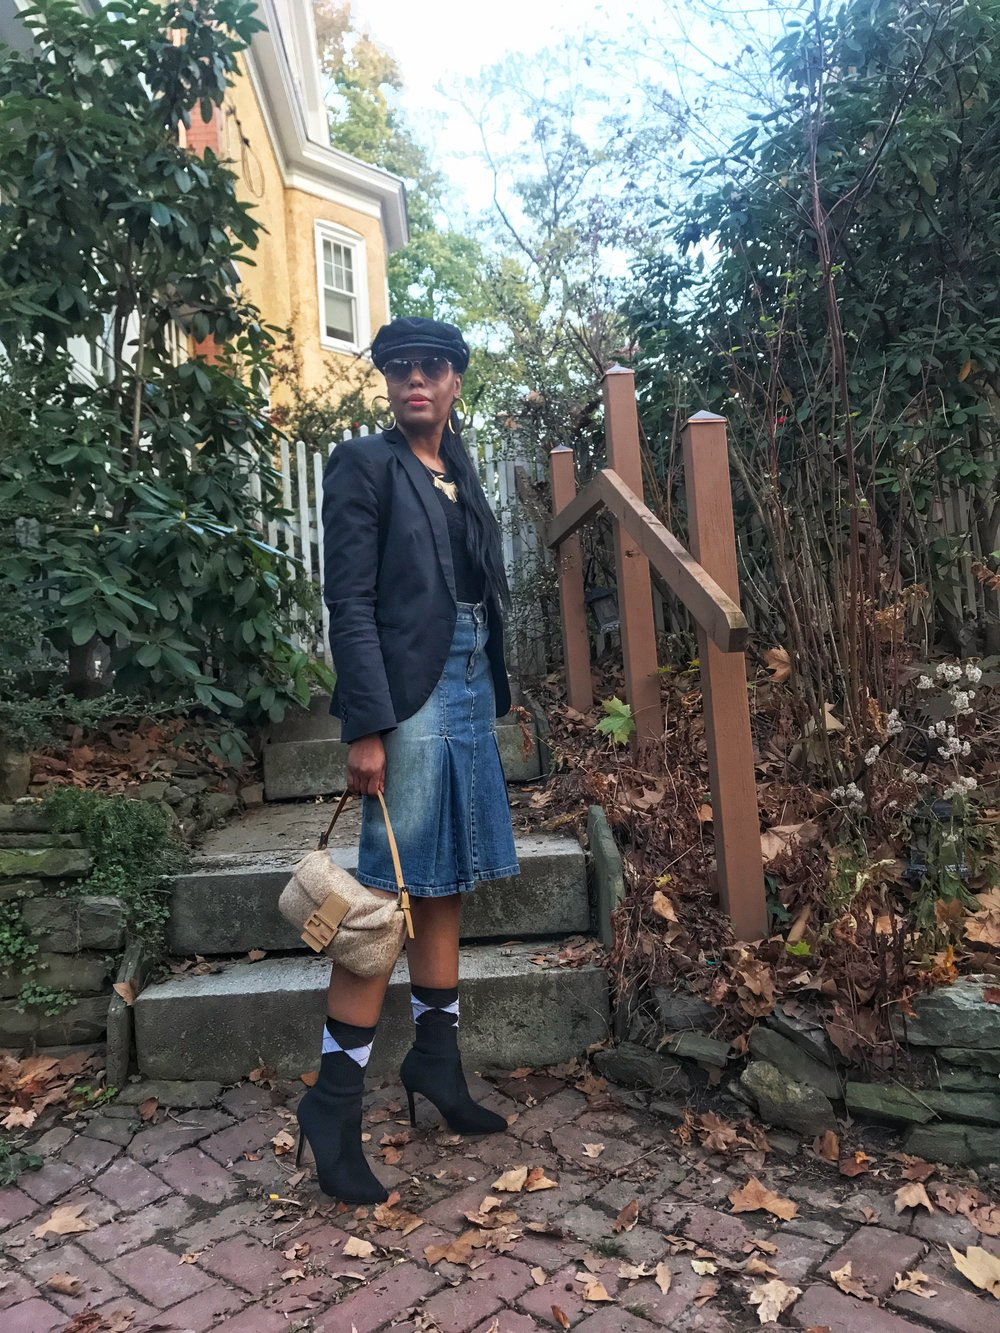 Denim Skirt (Levi's)(old) Alternatives  here  | Top (DKNY)(old) | Blazer(Forever21) Alternative  here  | Newsboy Cap (Primark) Alternative  here  | Booties (TJ Maxx) Alternative  here  | Bag (Fendi)